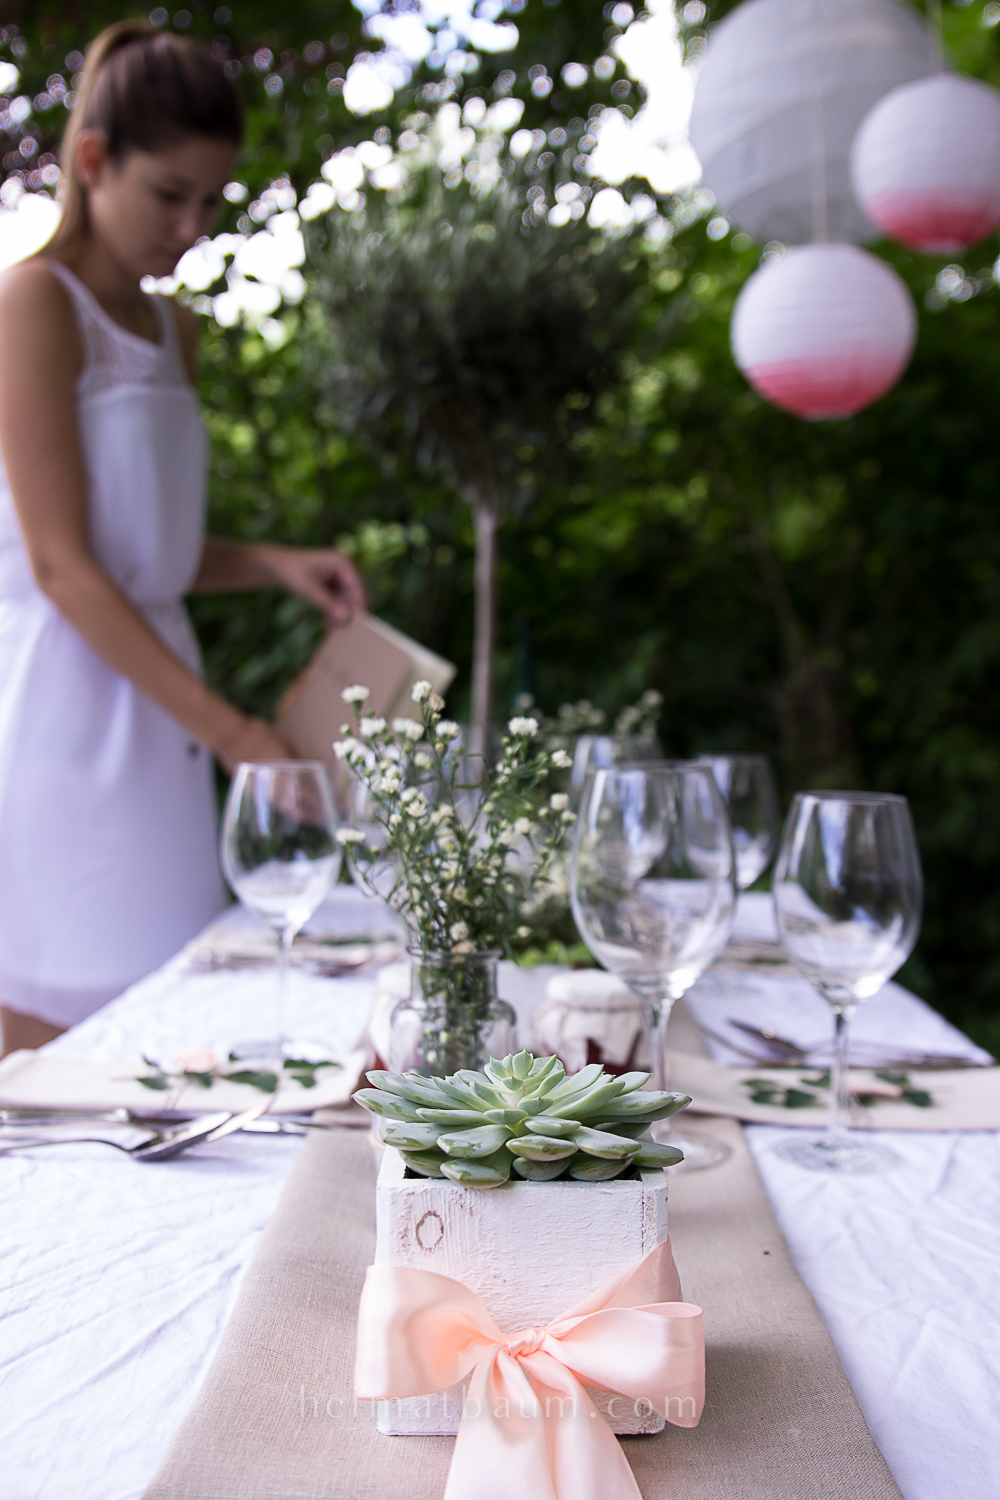 table-setting-wedding-heimatbaum-com-2